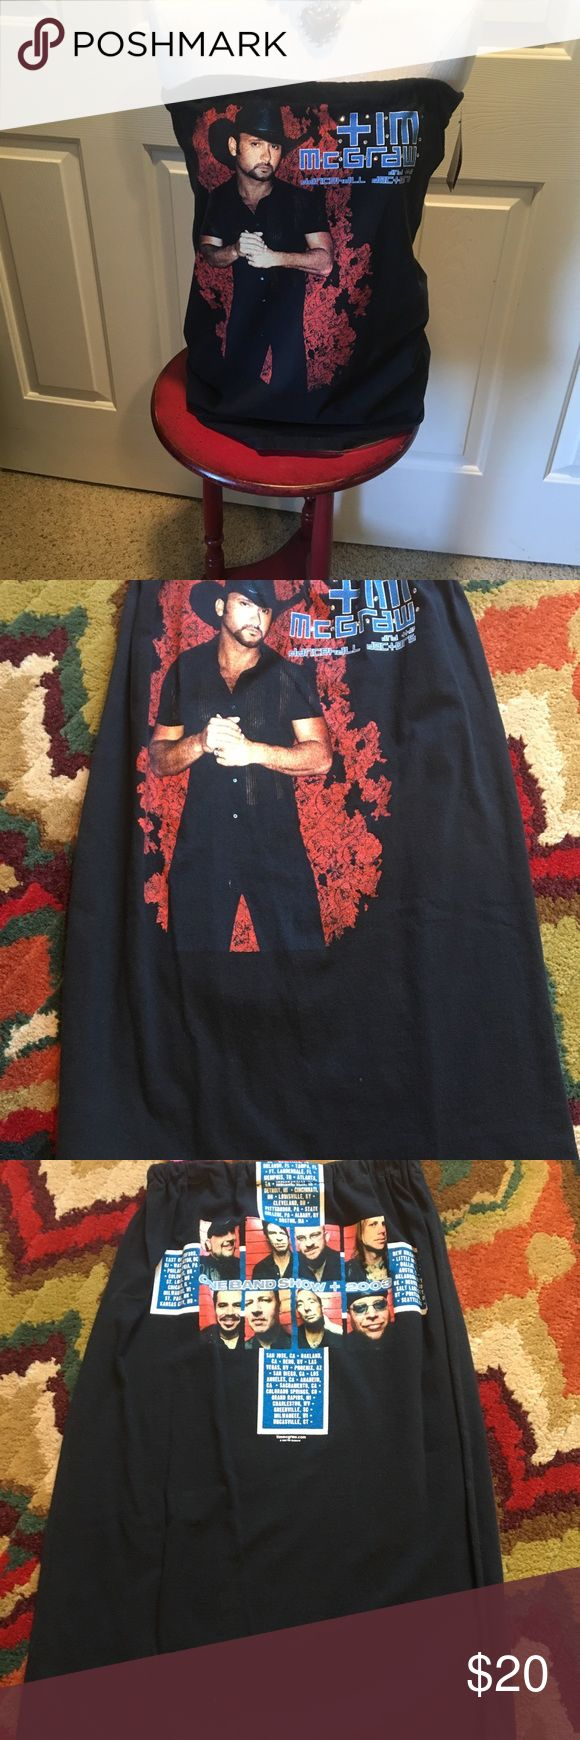 Boutique hand made Tim McGraw concert tube top New with tag boutique hand made recycled concert tee tube top.  One size fits most.  Top is shown measured unstreached.  Featuring Tim McGraw. Perfect for upcoming concerts or nights out on the town.  Feel free to make a reasonable offer using the offer feature or bundle and save. boutique Tops